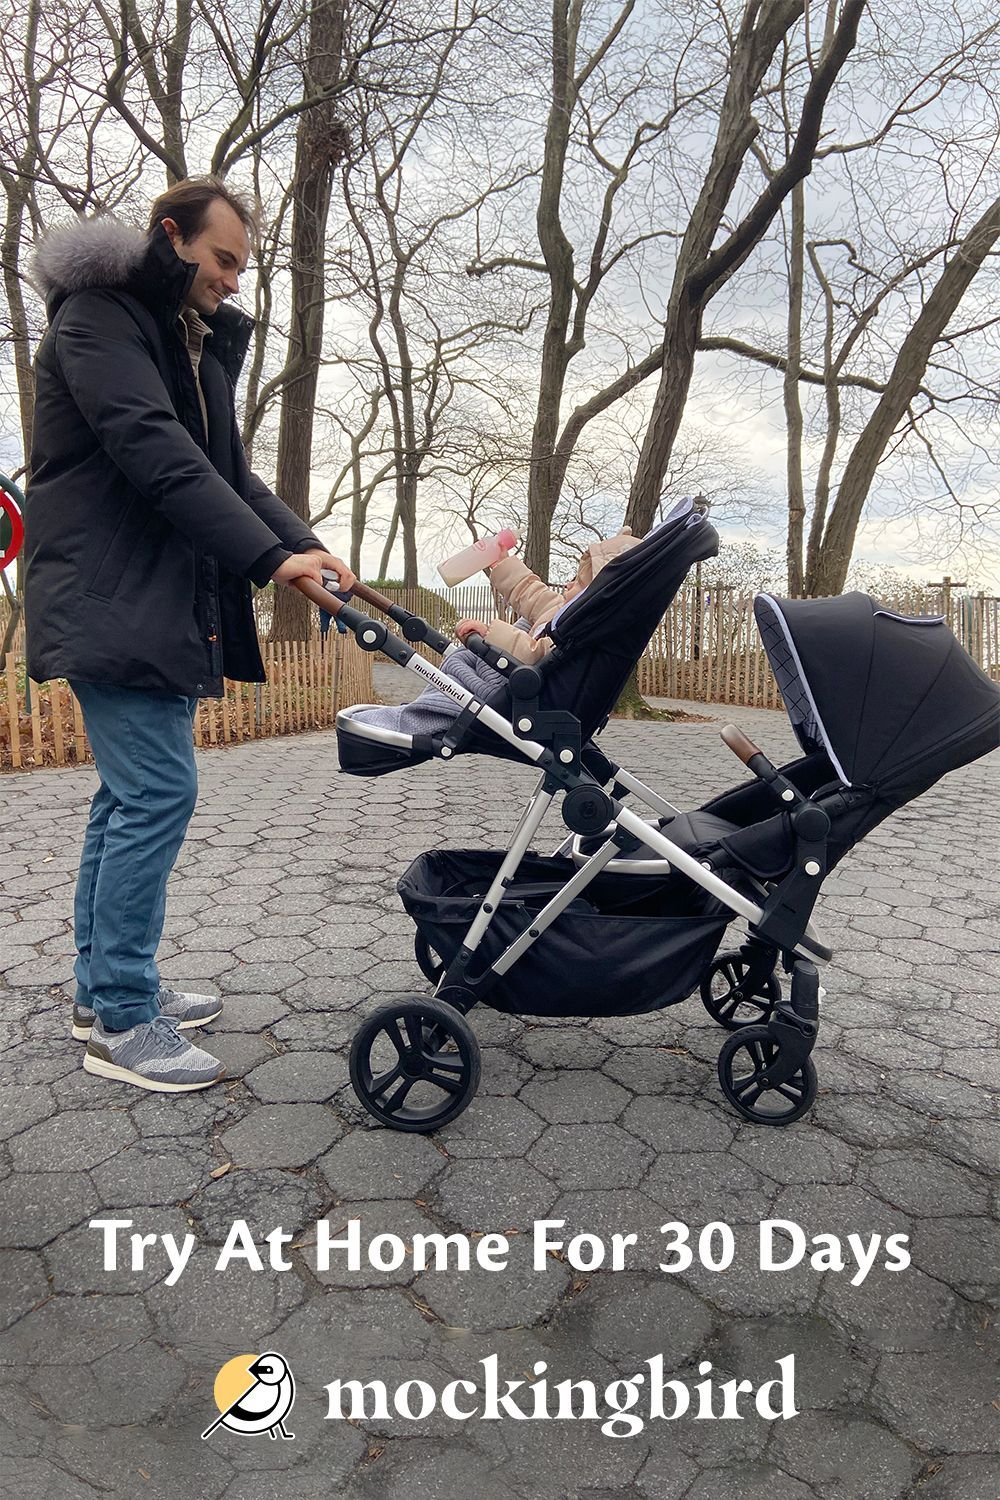 Mockingbird S 30 Day Risk Free At Home Trial Lets You Feel Confident This Stroller Works For You In 2020 Baby Strollers Smart Baby Products Stroller